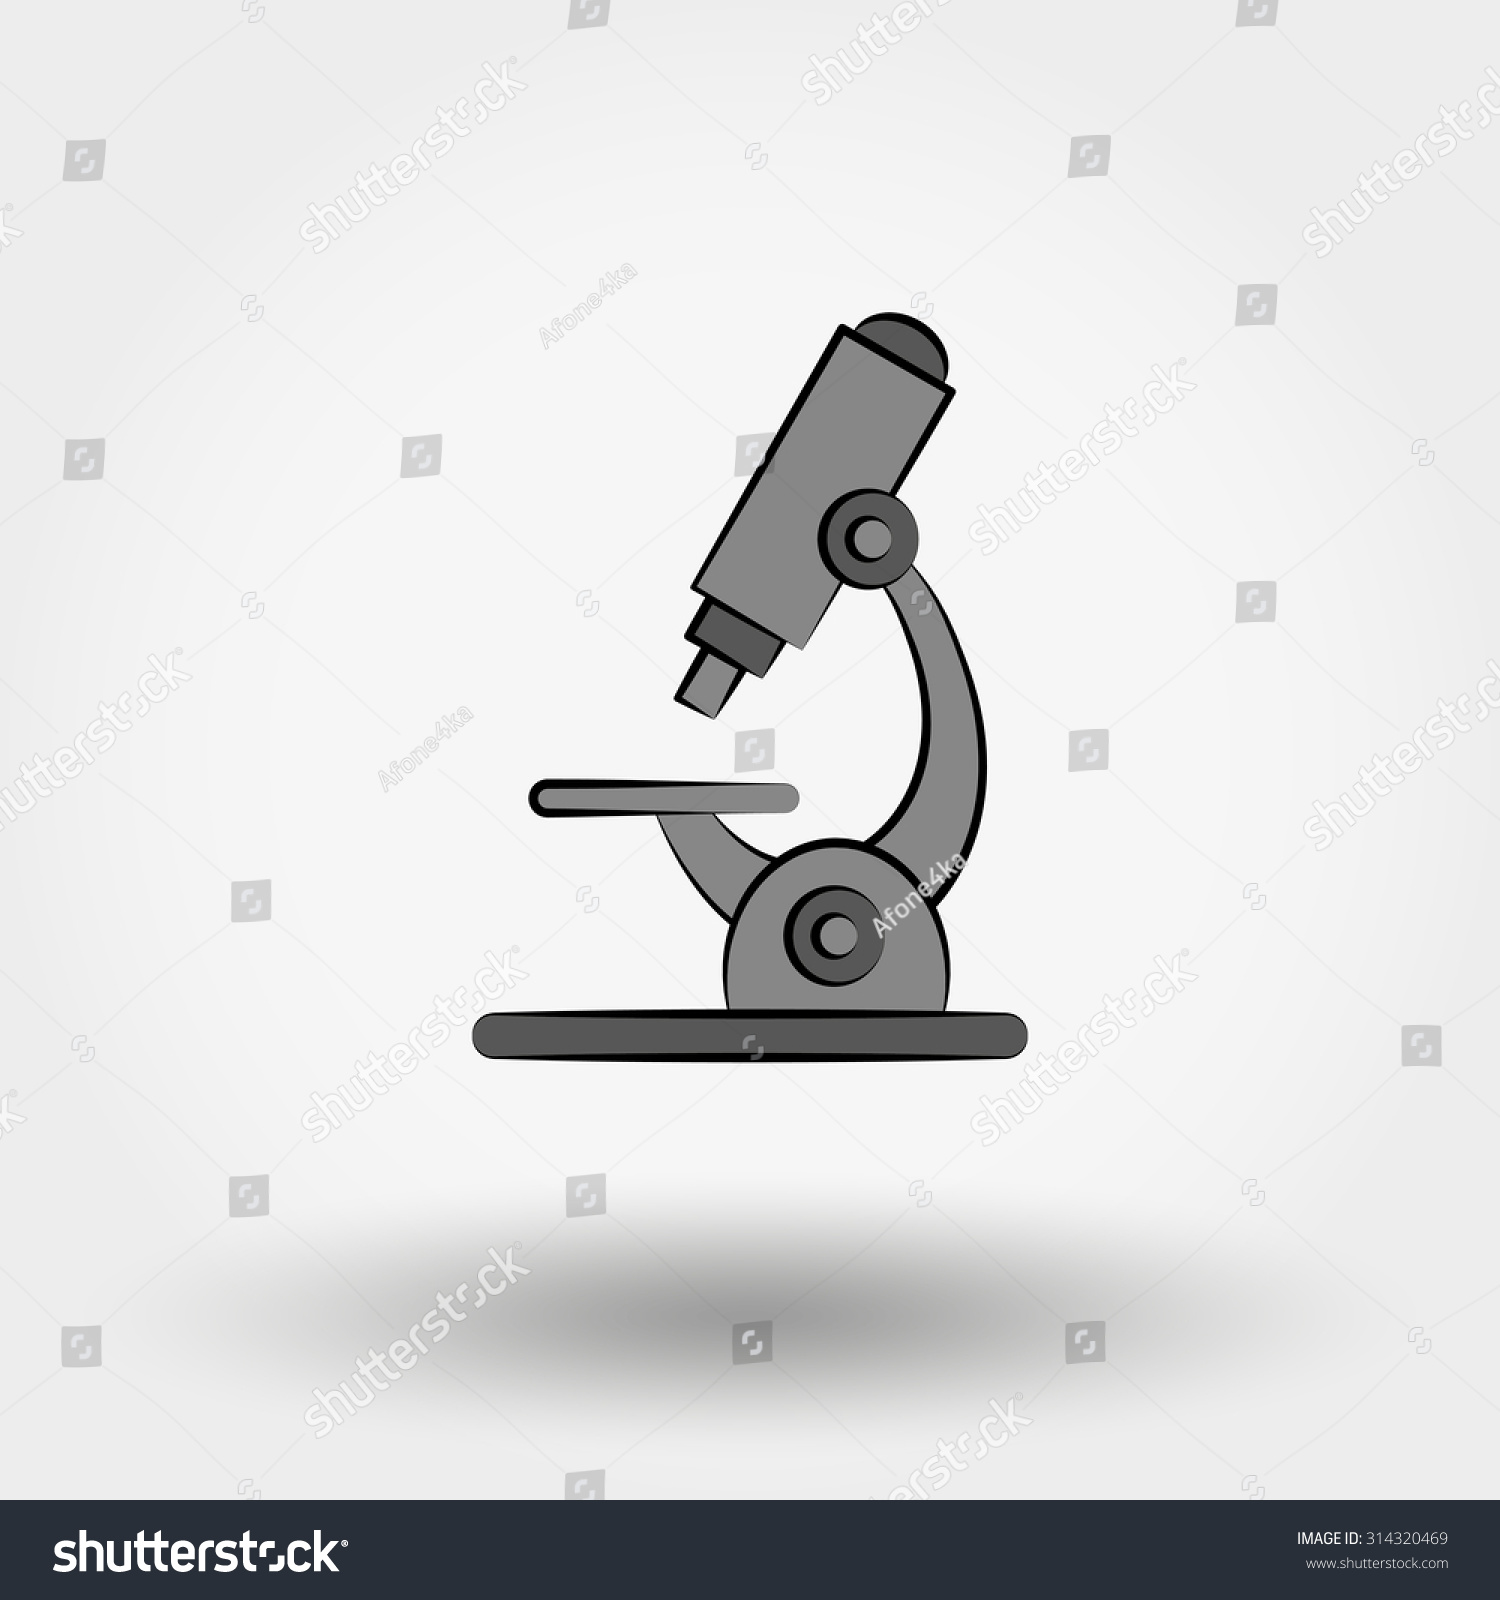 microscope illustration on white background doodle stock illustration 314320469 shutterstock